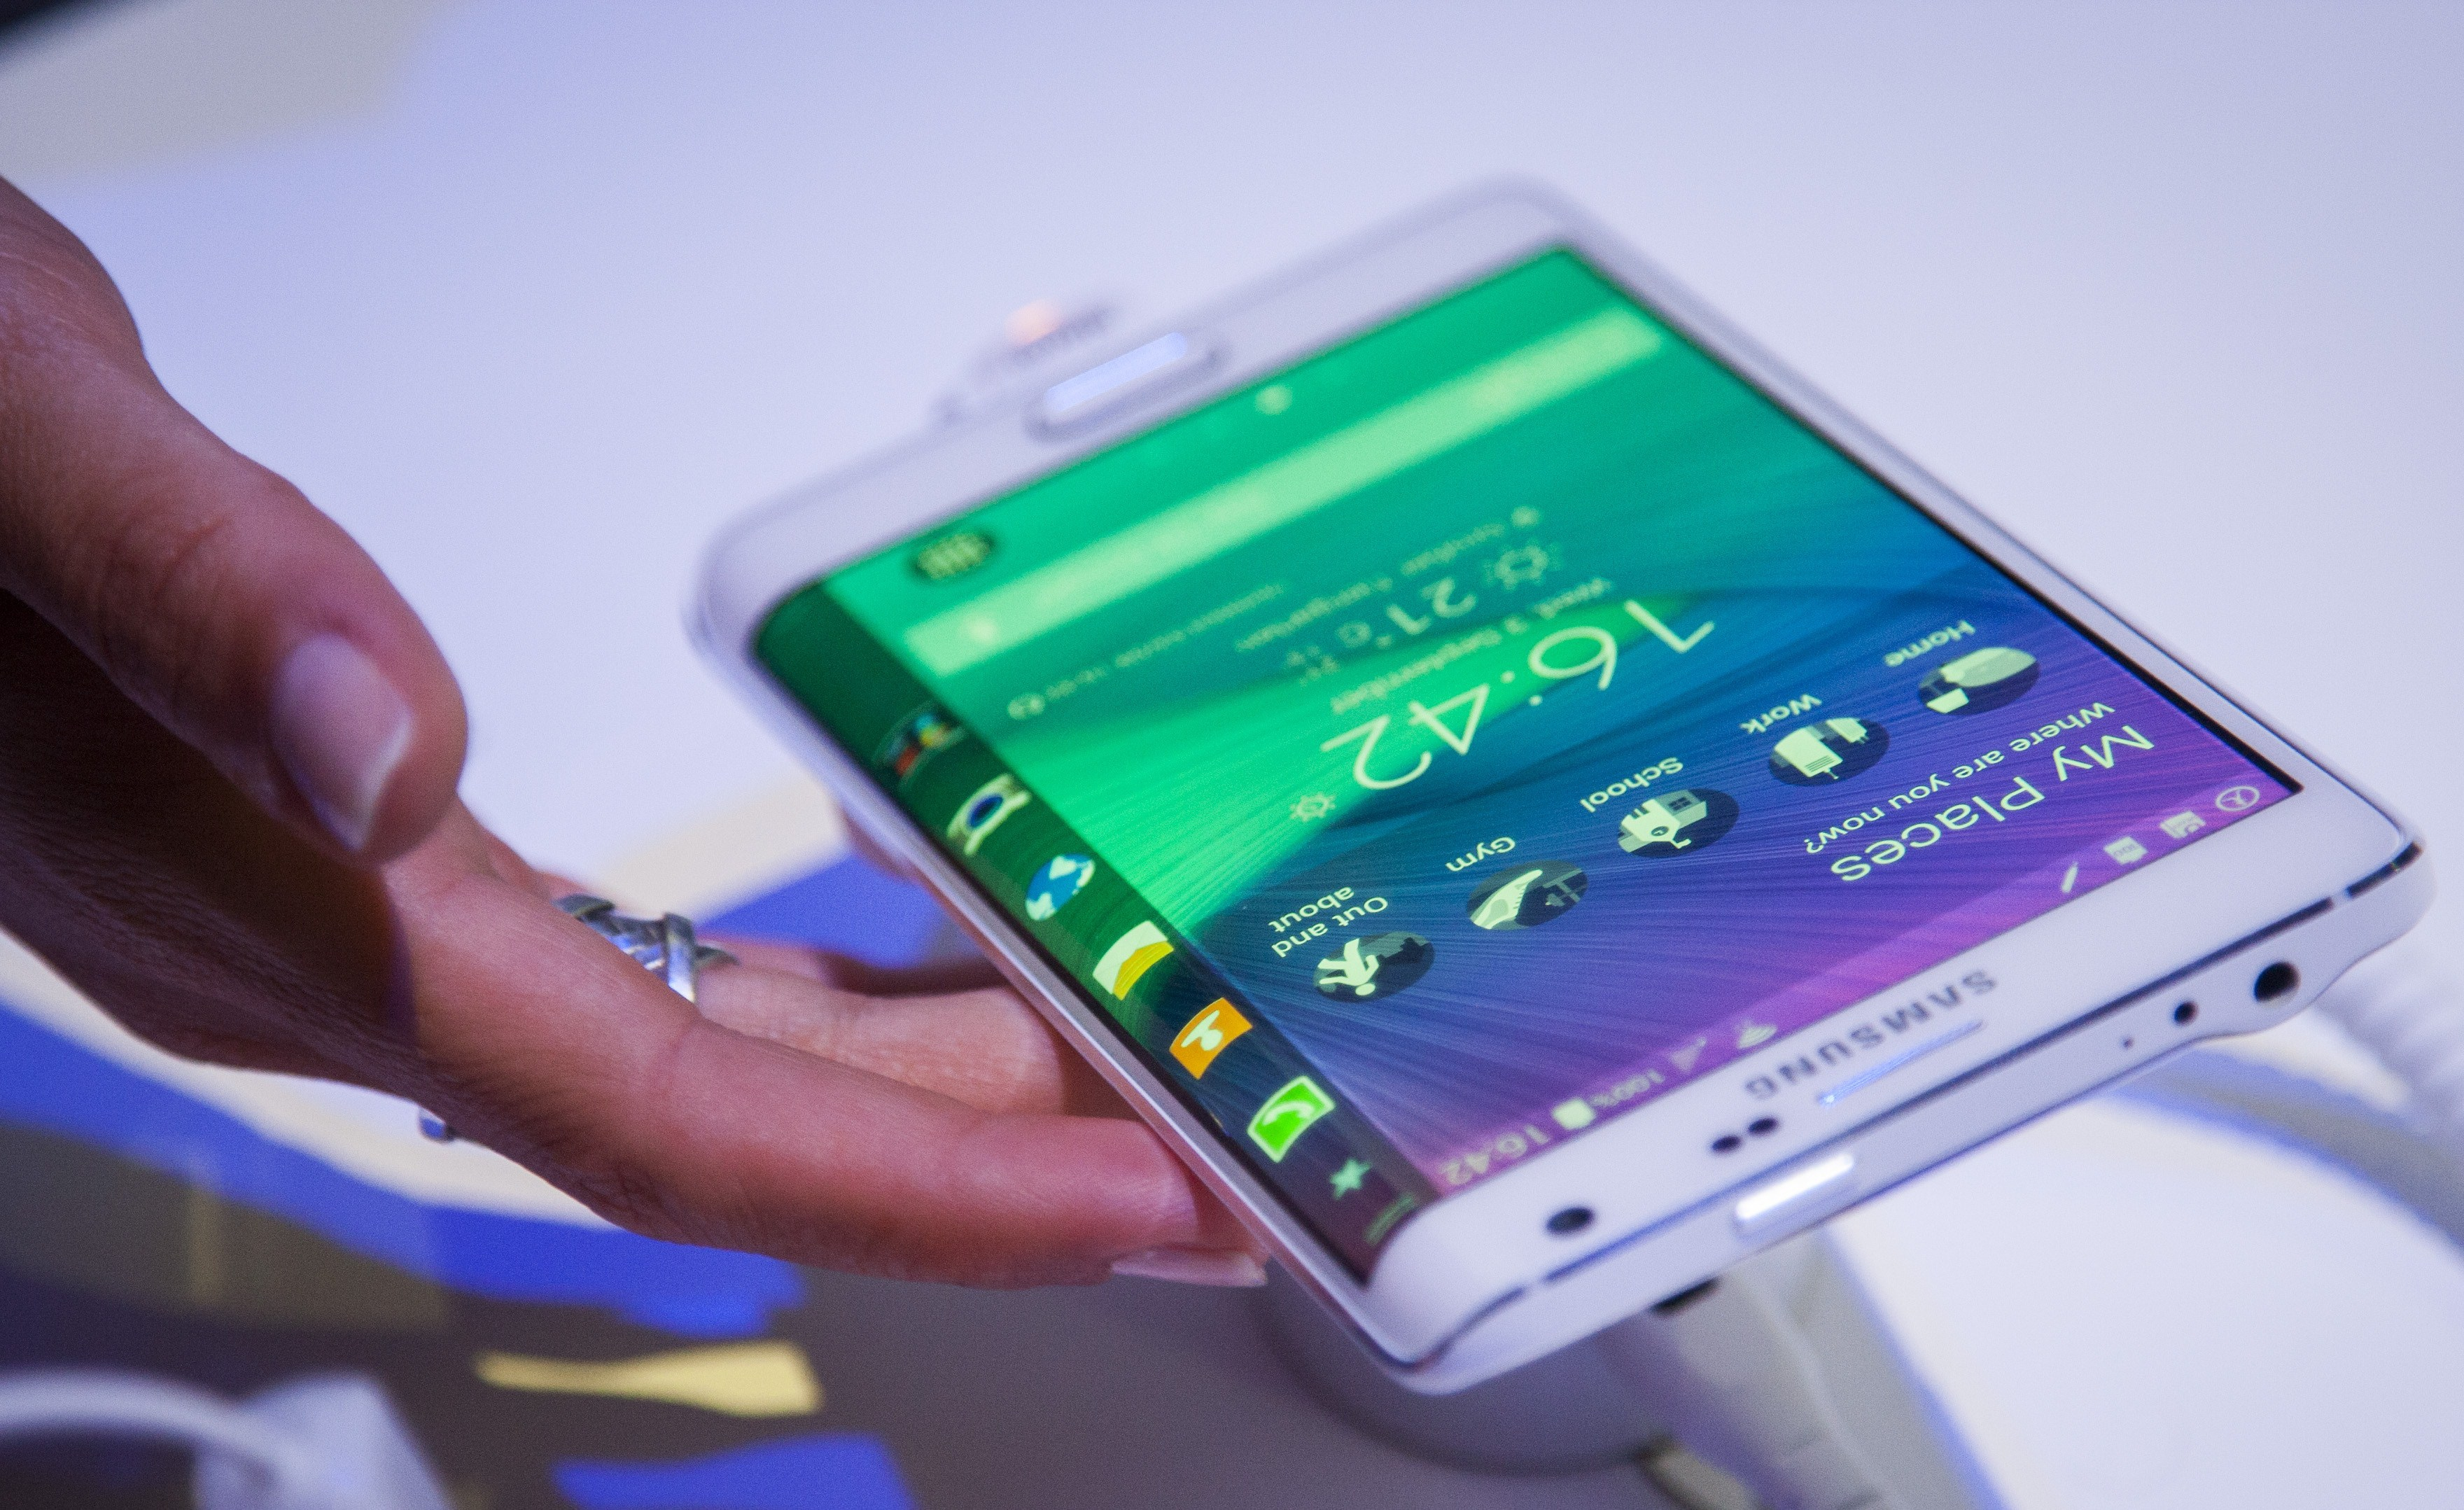 Samsung unveils Galaxy Note 4, Galaxy Note Edge phones - CBS News 36409ffd2403